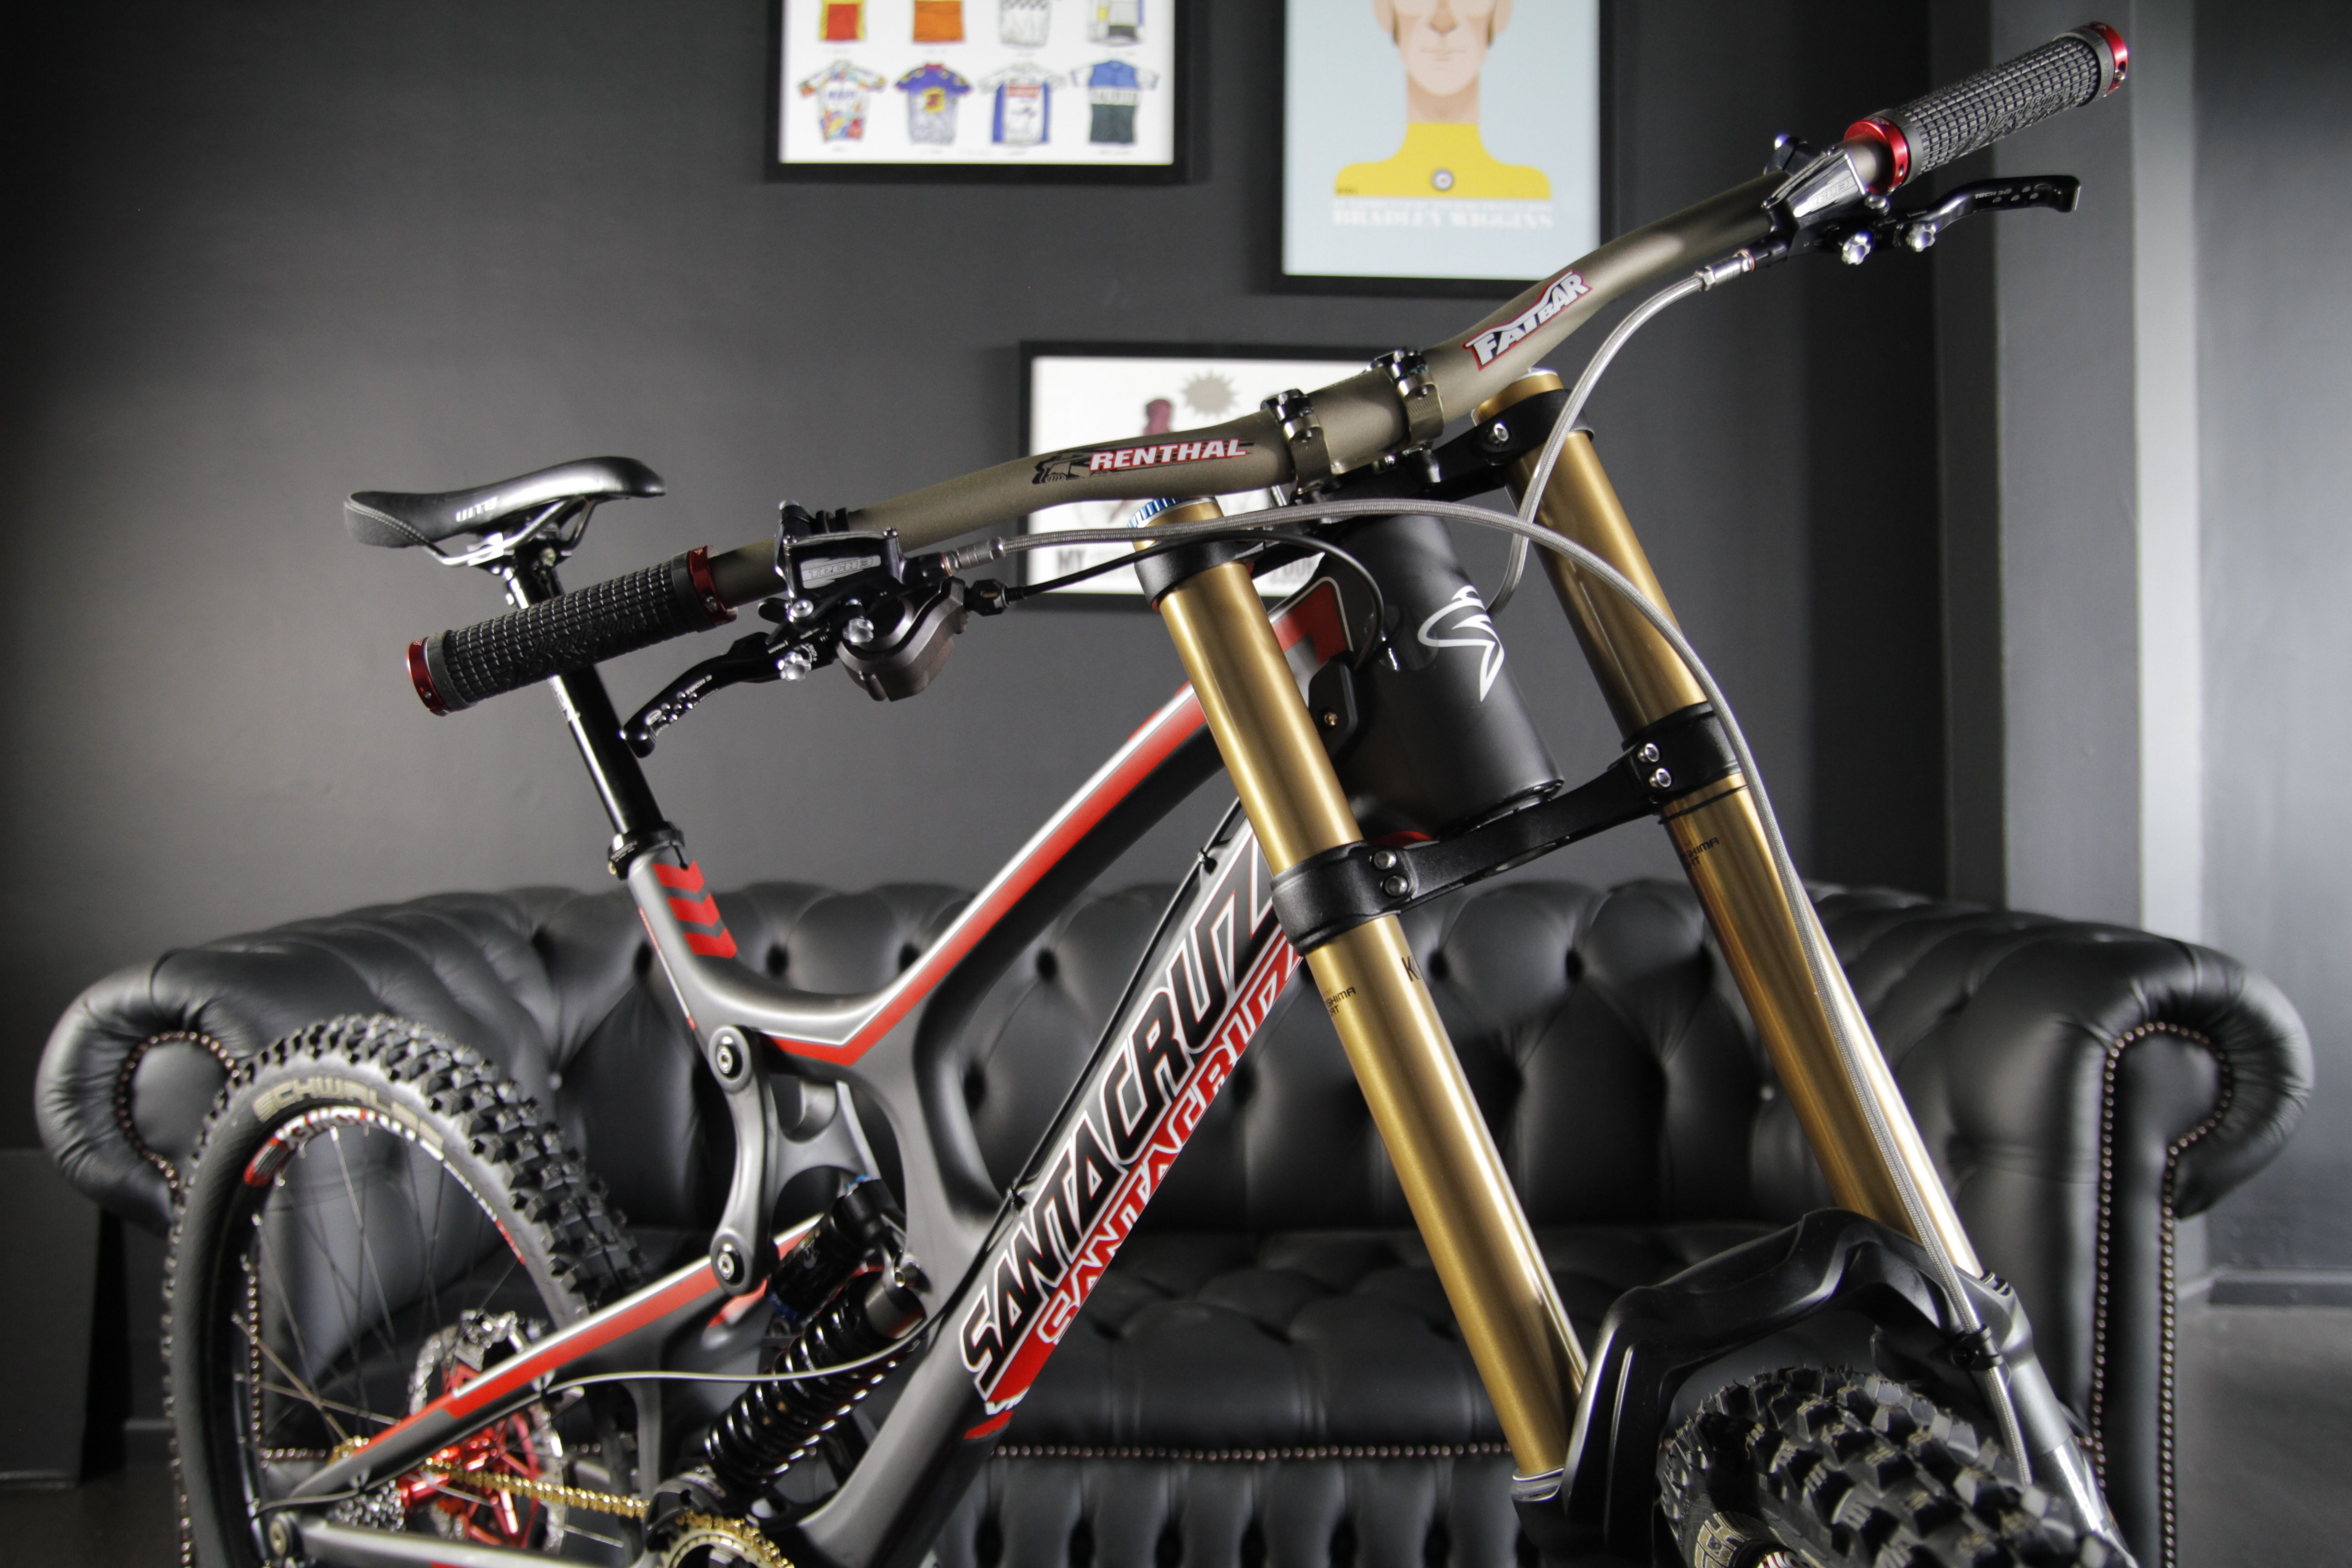 Bike of the day santa cruz v10 carbon dh builds from 7499 bike of the day santa cruz v10 carbon dh builds from 7499 altavistaventures Image collections